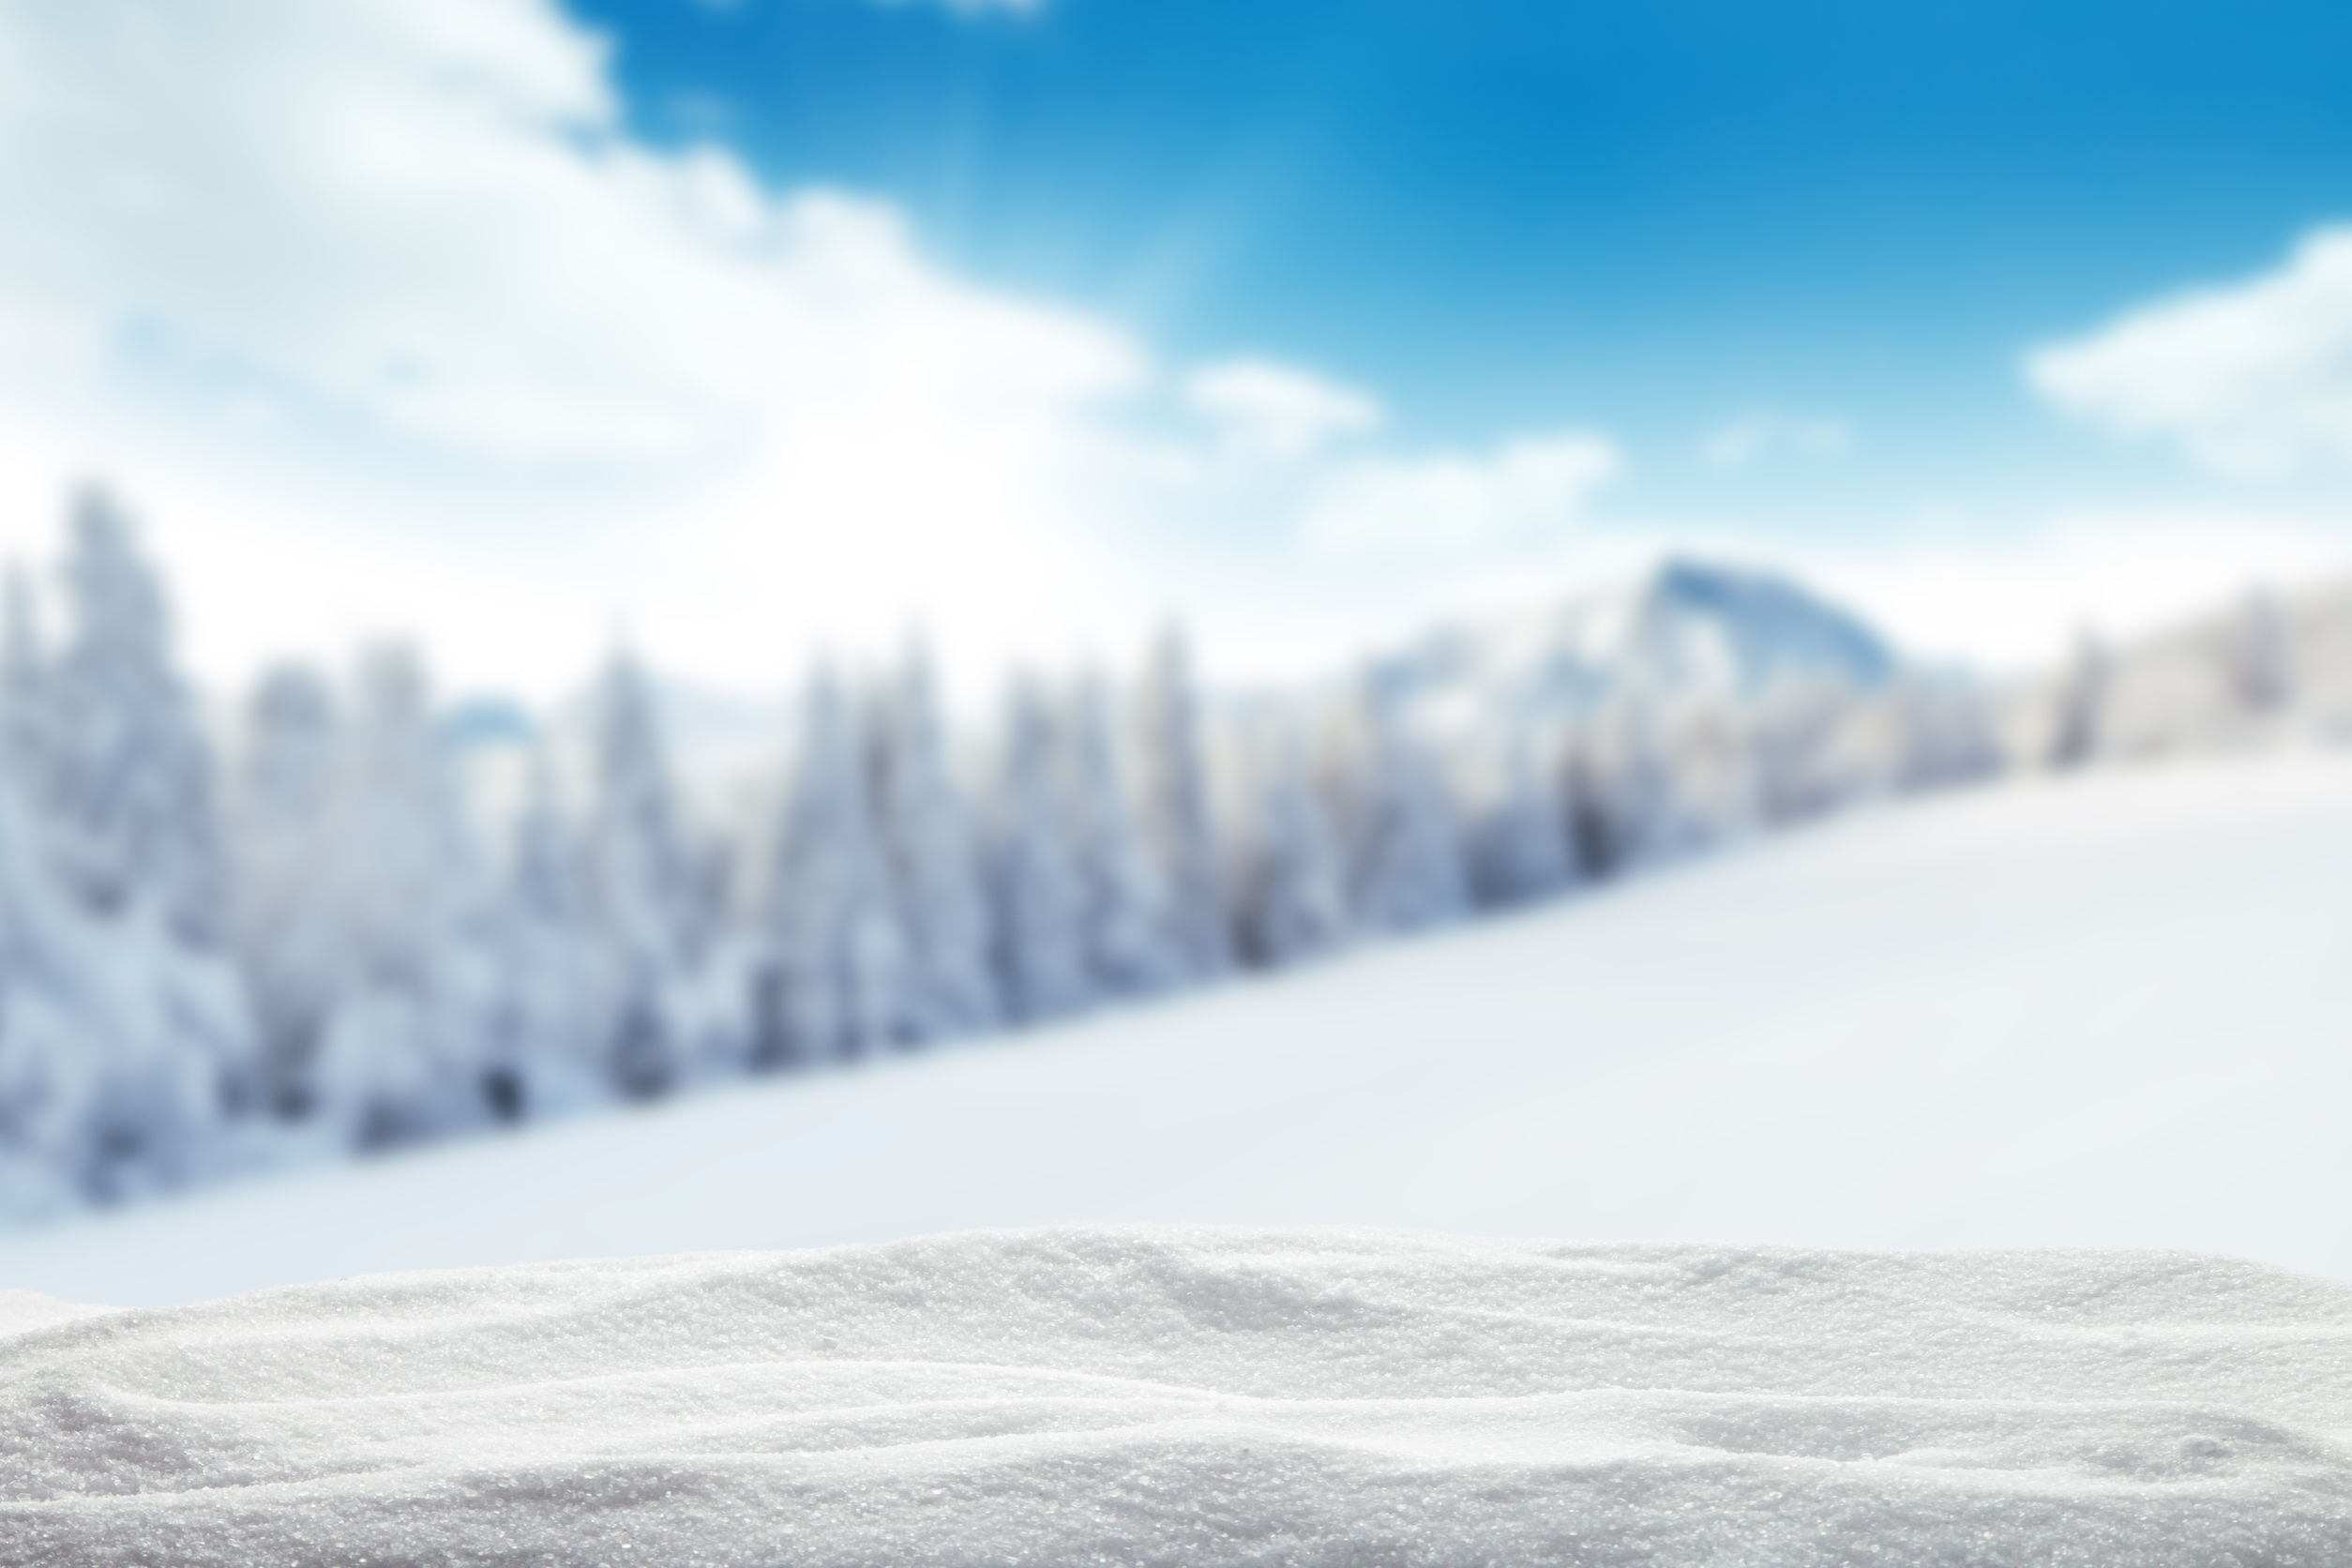 46629080 - winter background with pile of snow and blur landscape. copyspace for text